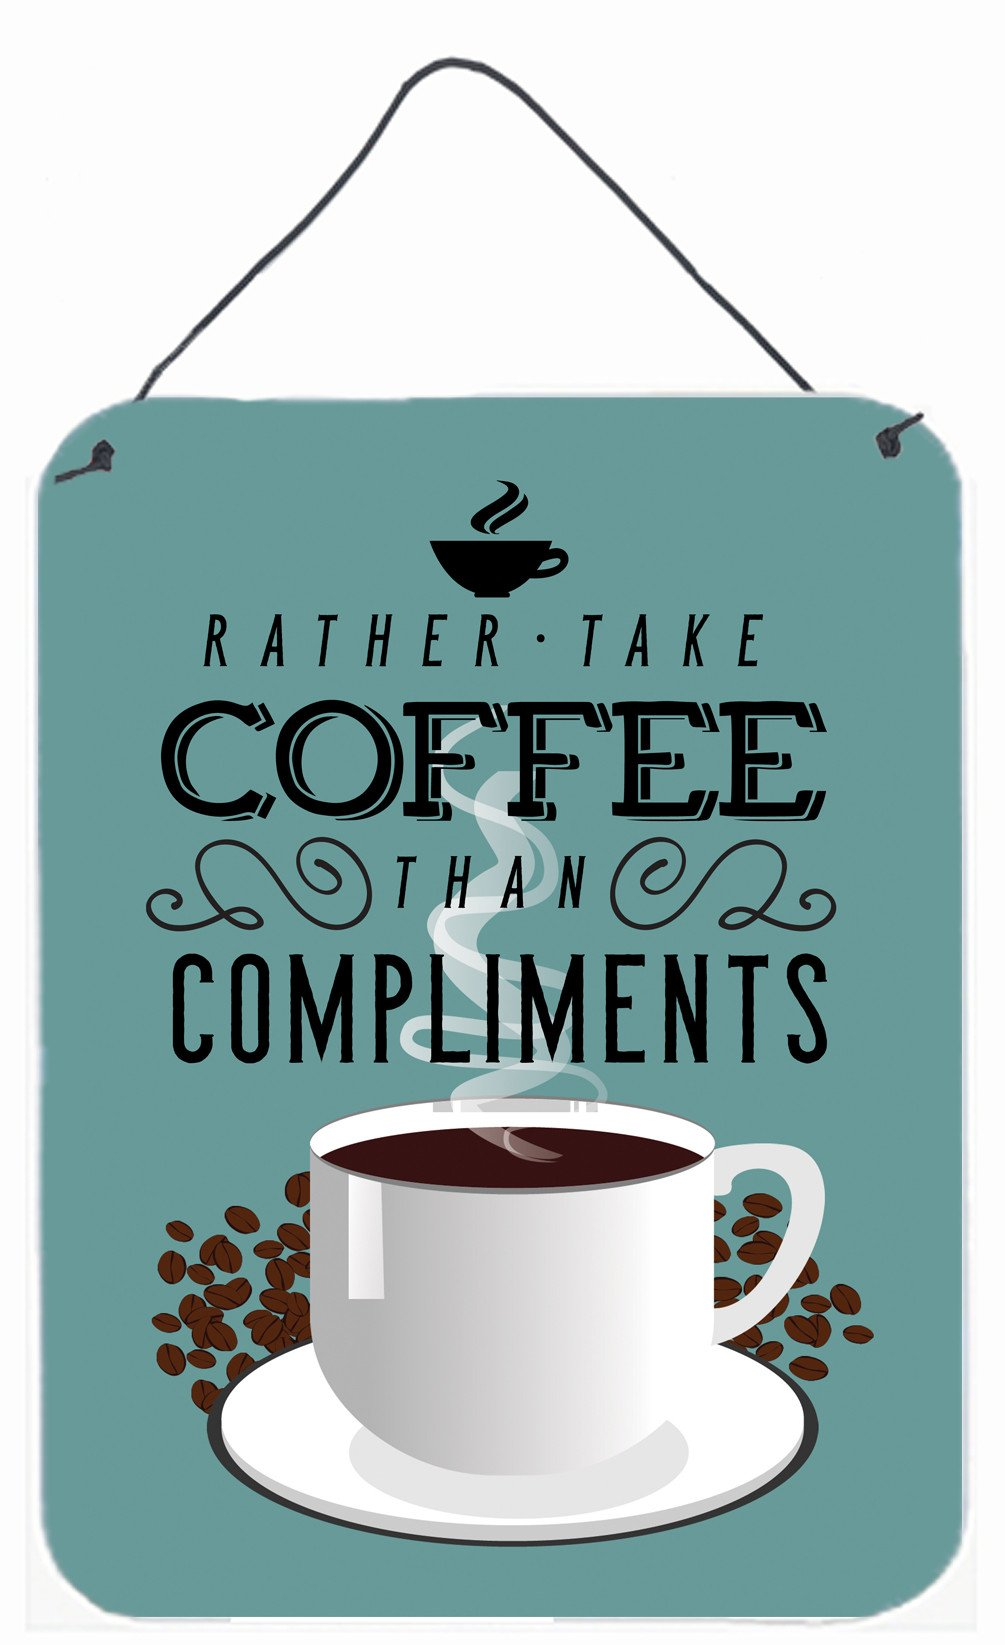 Rather have Coffee Sign Wall or Door Hanging Prints BB5402DS1216 by Caroline's Treasures